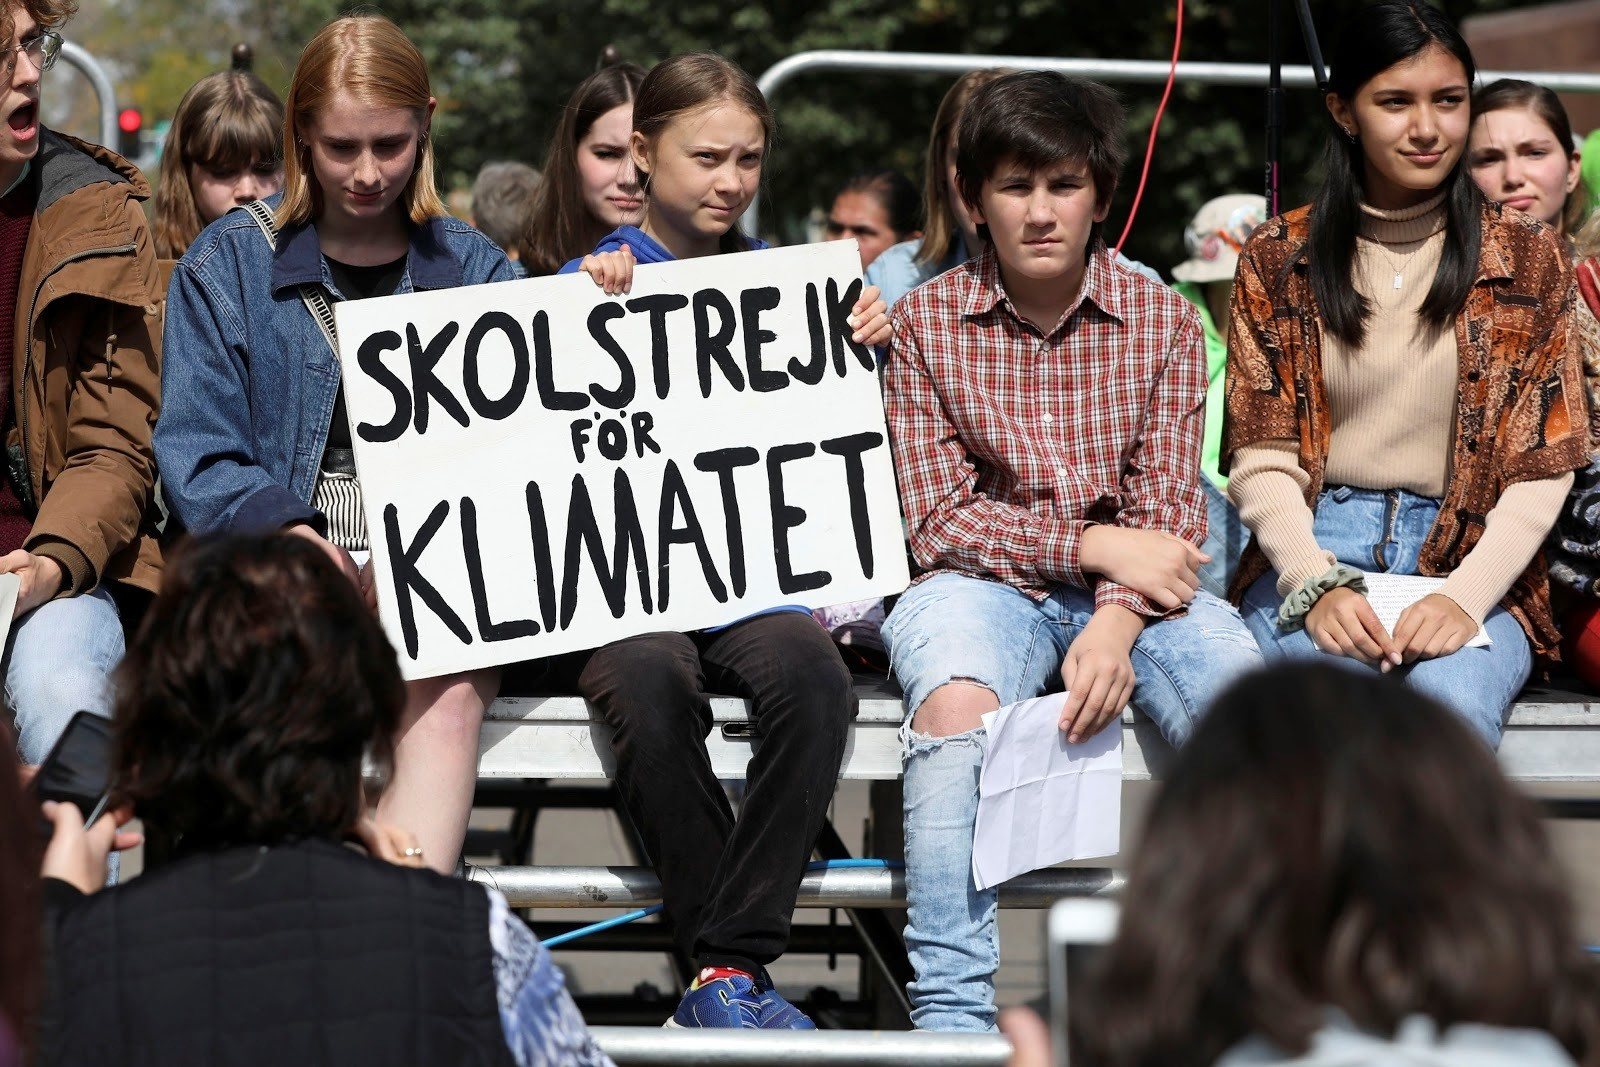 Greta Thunberg's climate strikes inspired action in cities around the world.